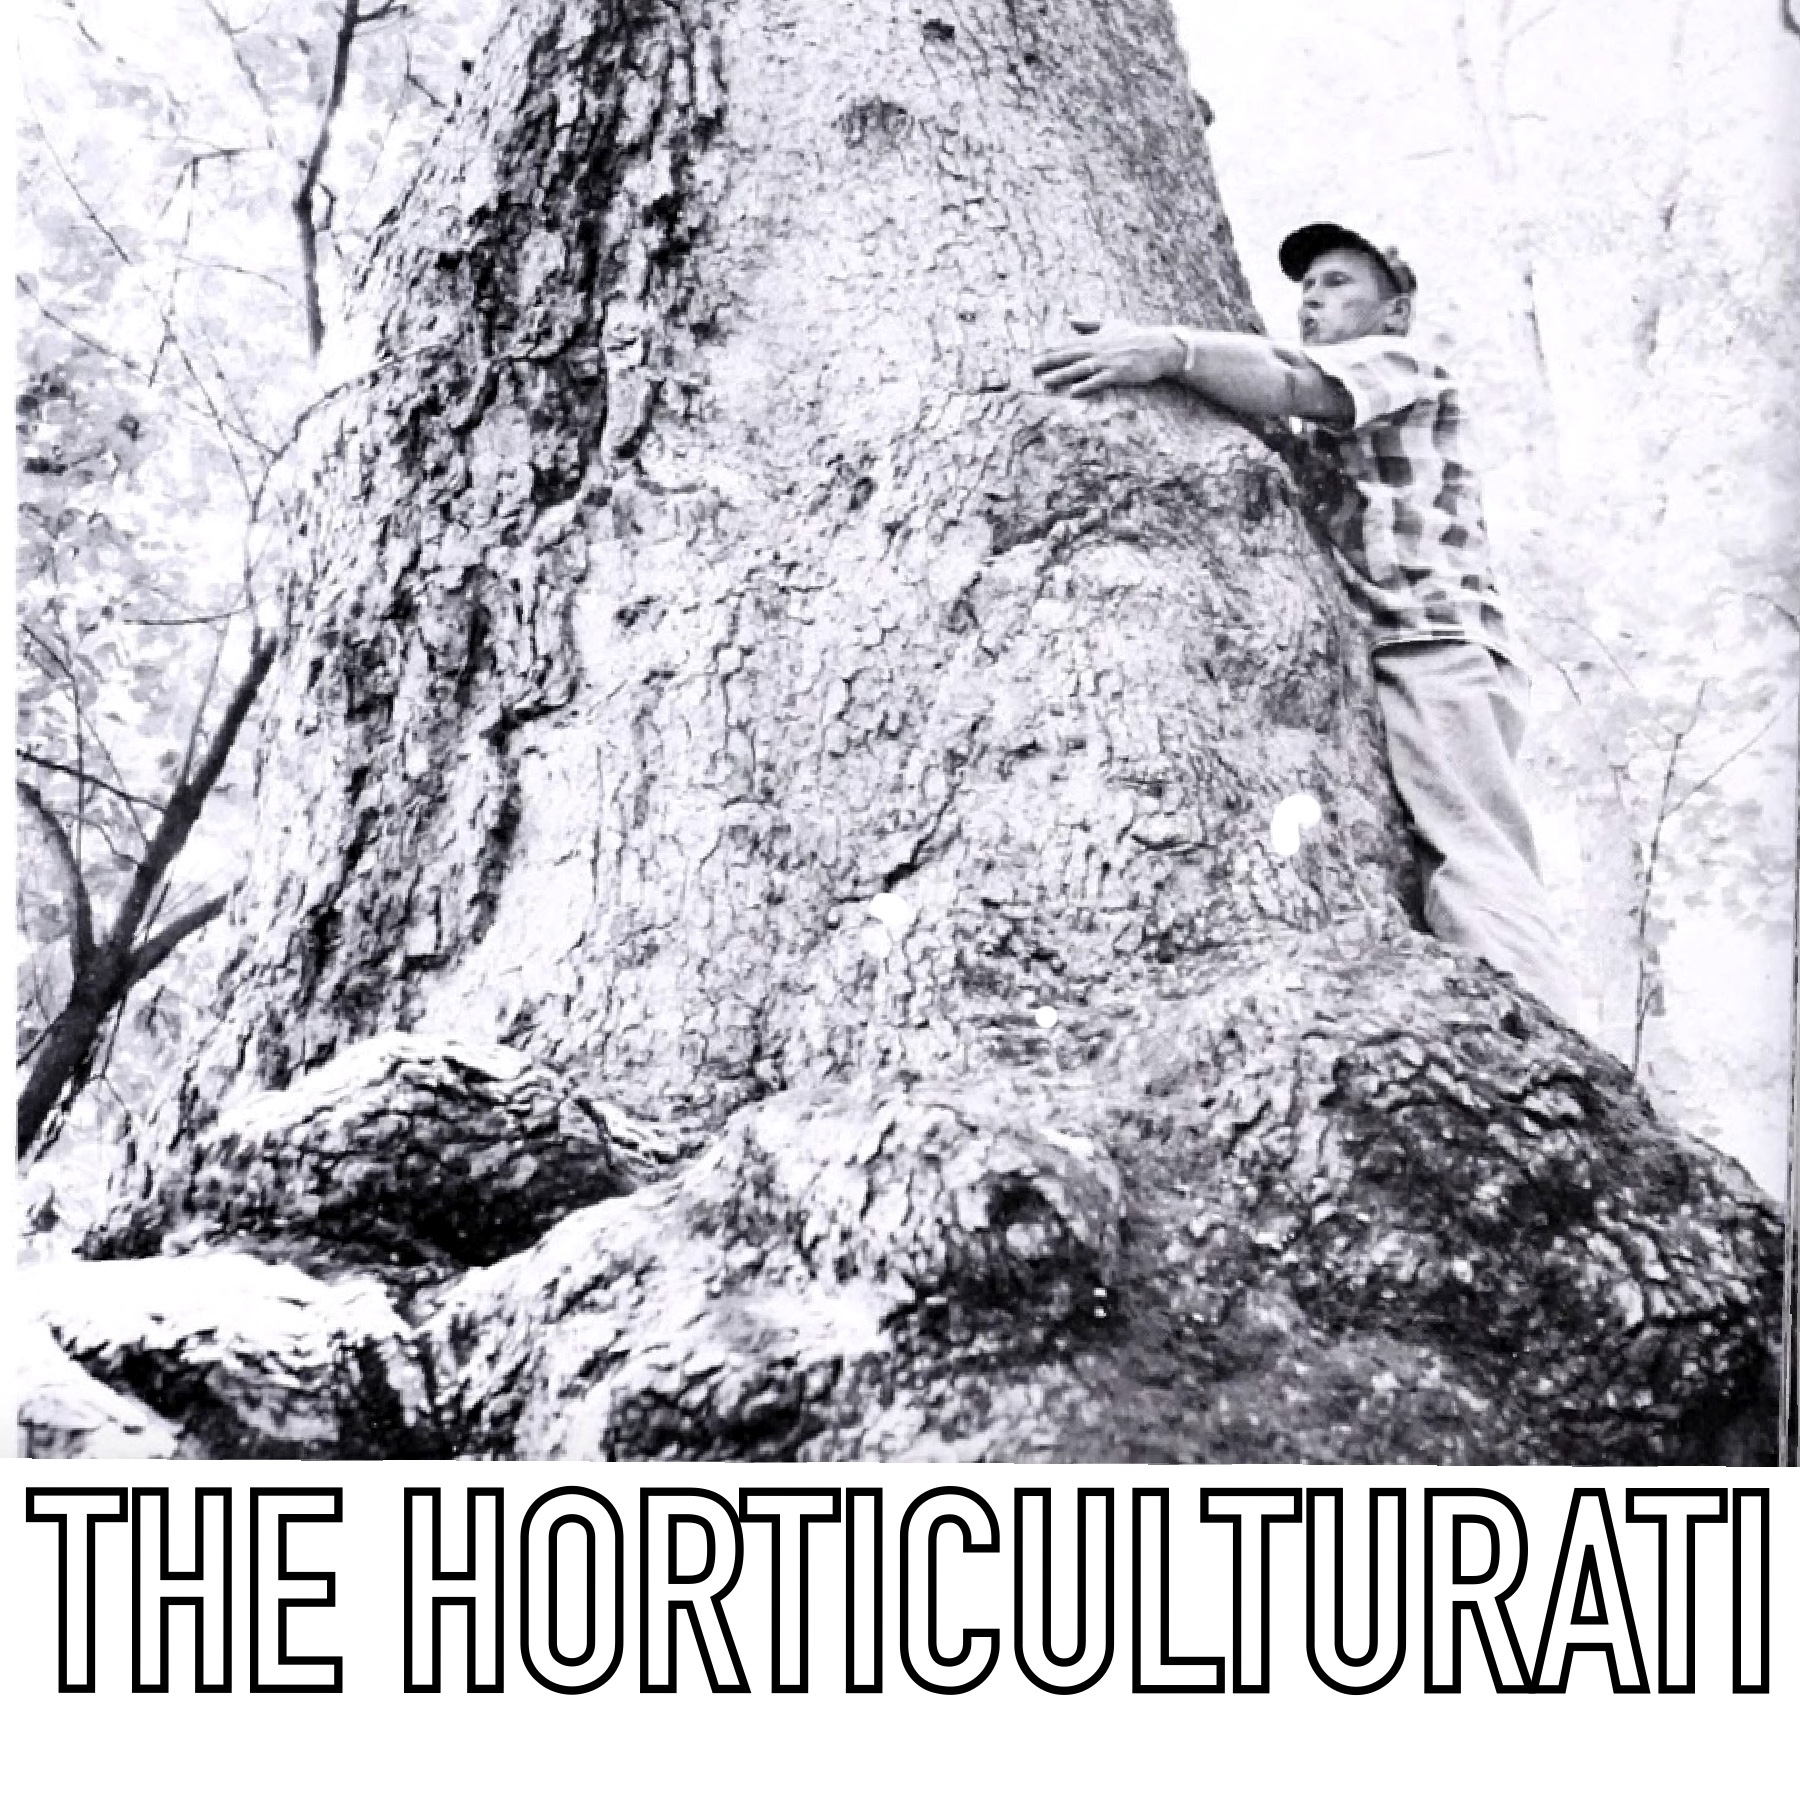 The Horticulturati: Xeriscape and the Hundredth Meridian